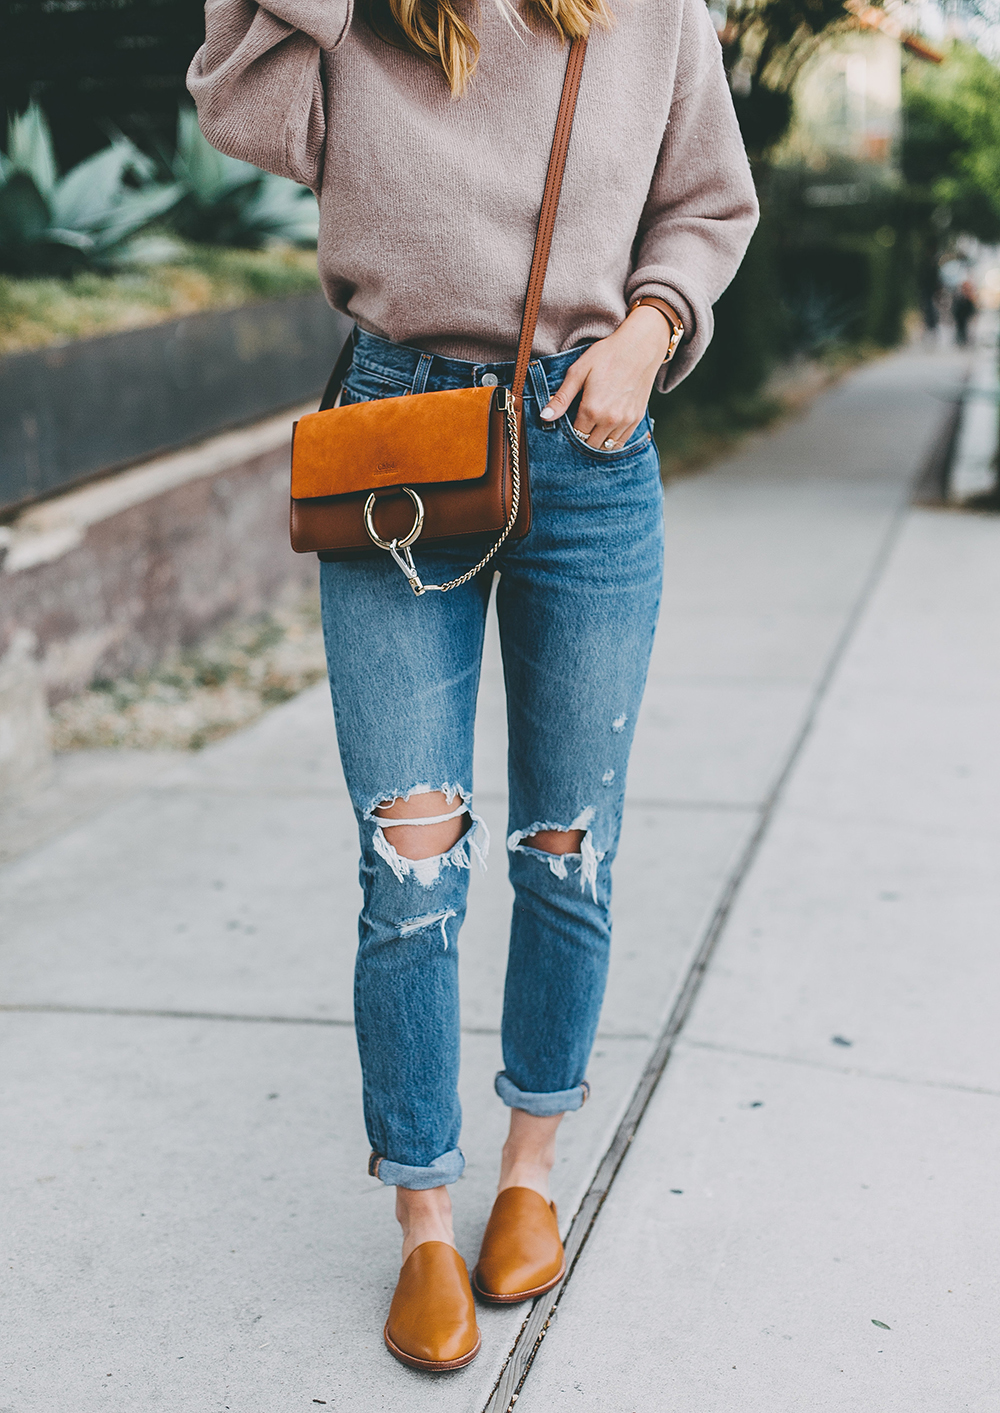 livvyland-blog-olivia-watson-mauve-mock-neck-sweater-levis-501-jeans-urban-outfitters-fortress-of-inca-tan-leather-slides-5